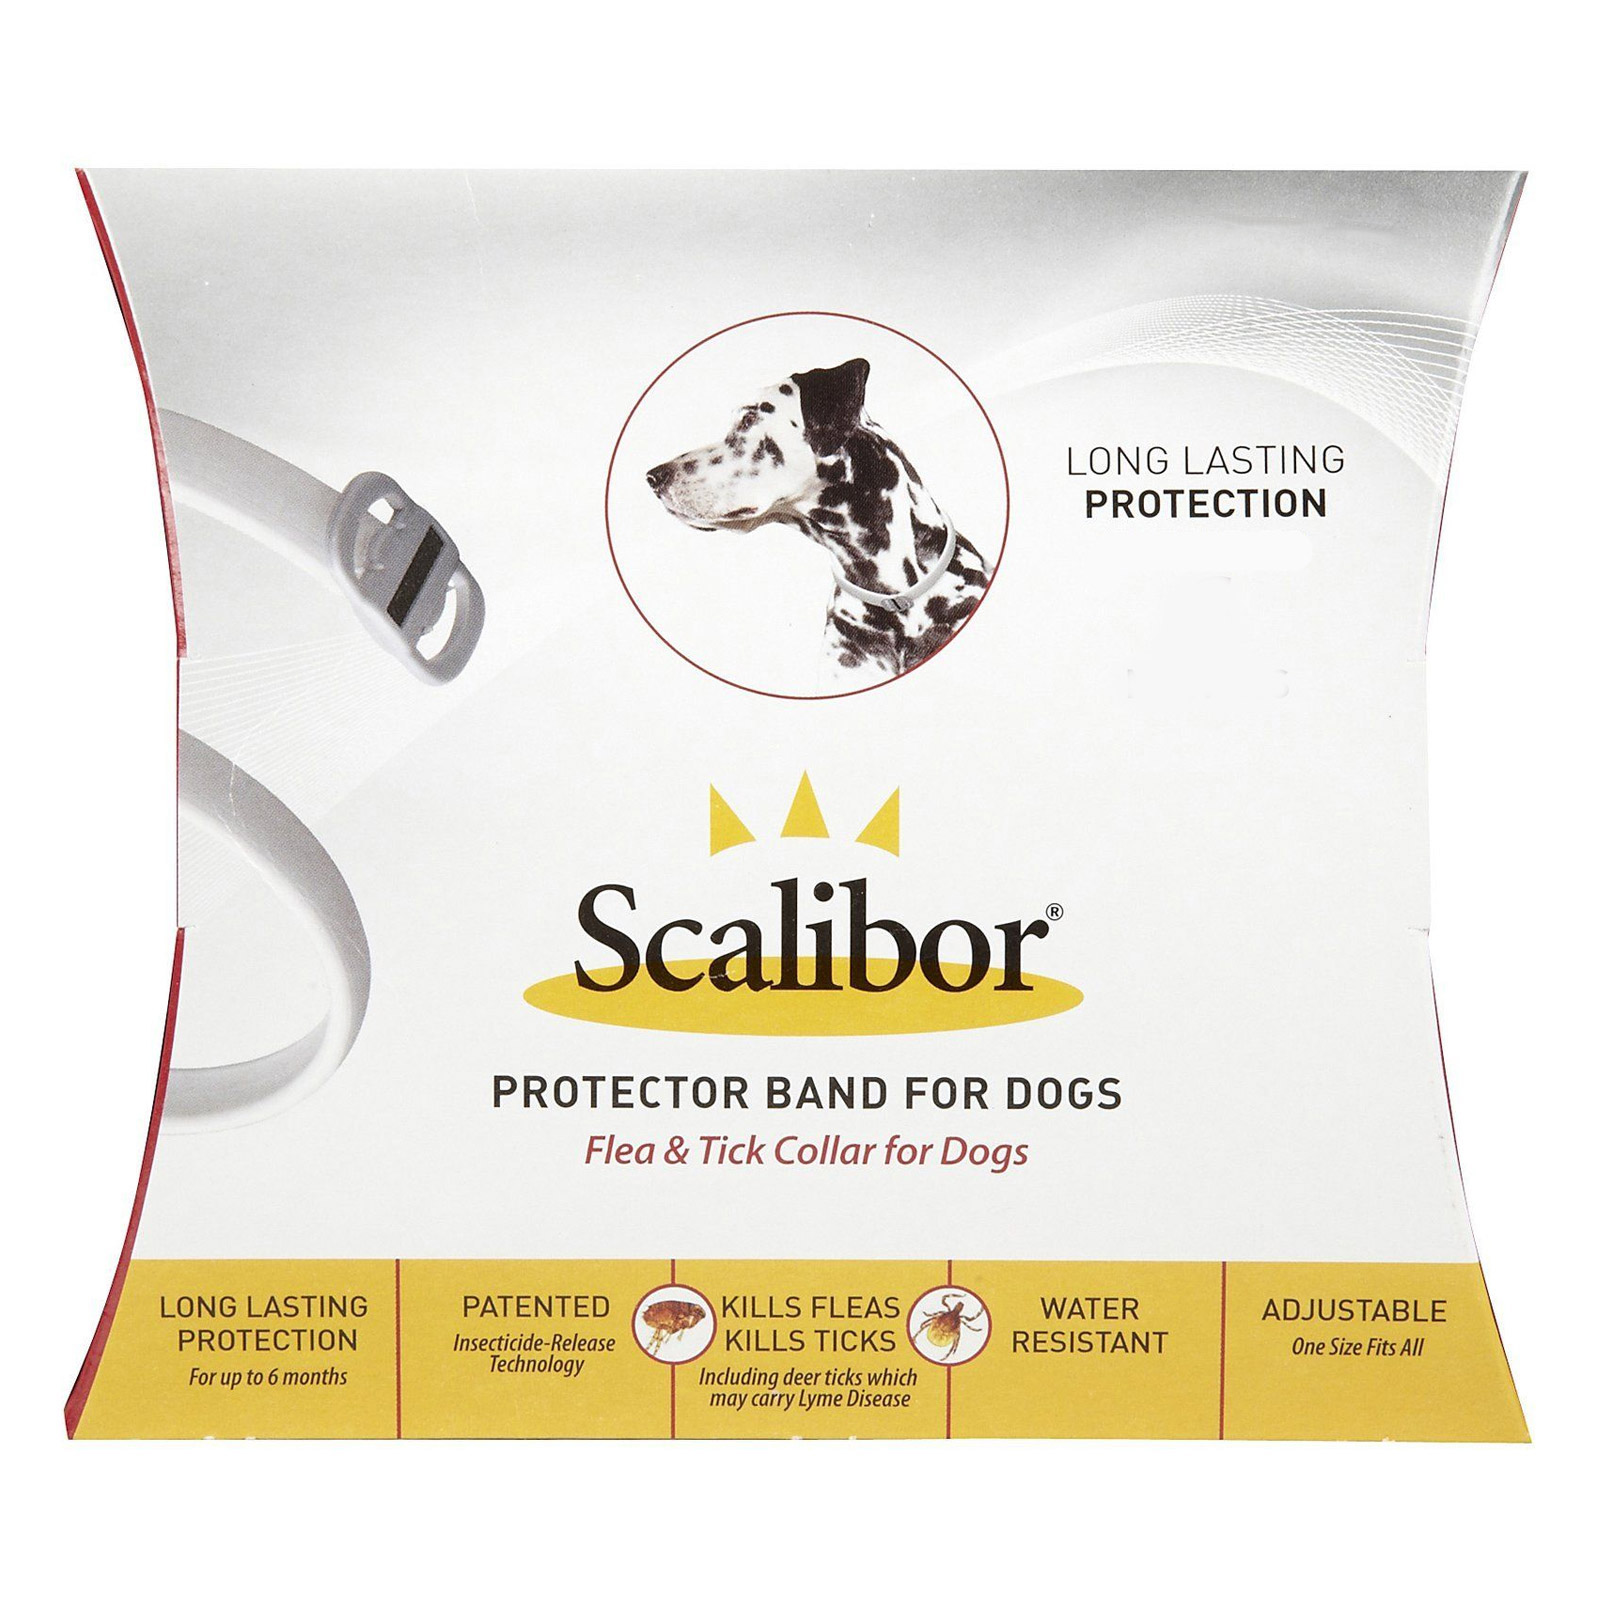 130047111264227135Scalibor-Tick-collars.jpg